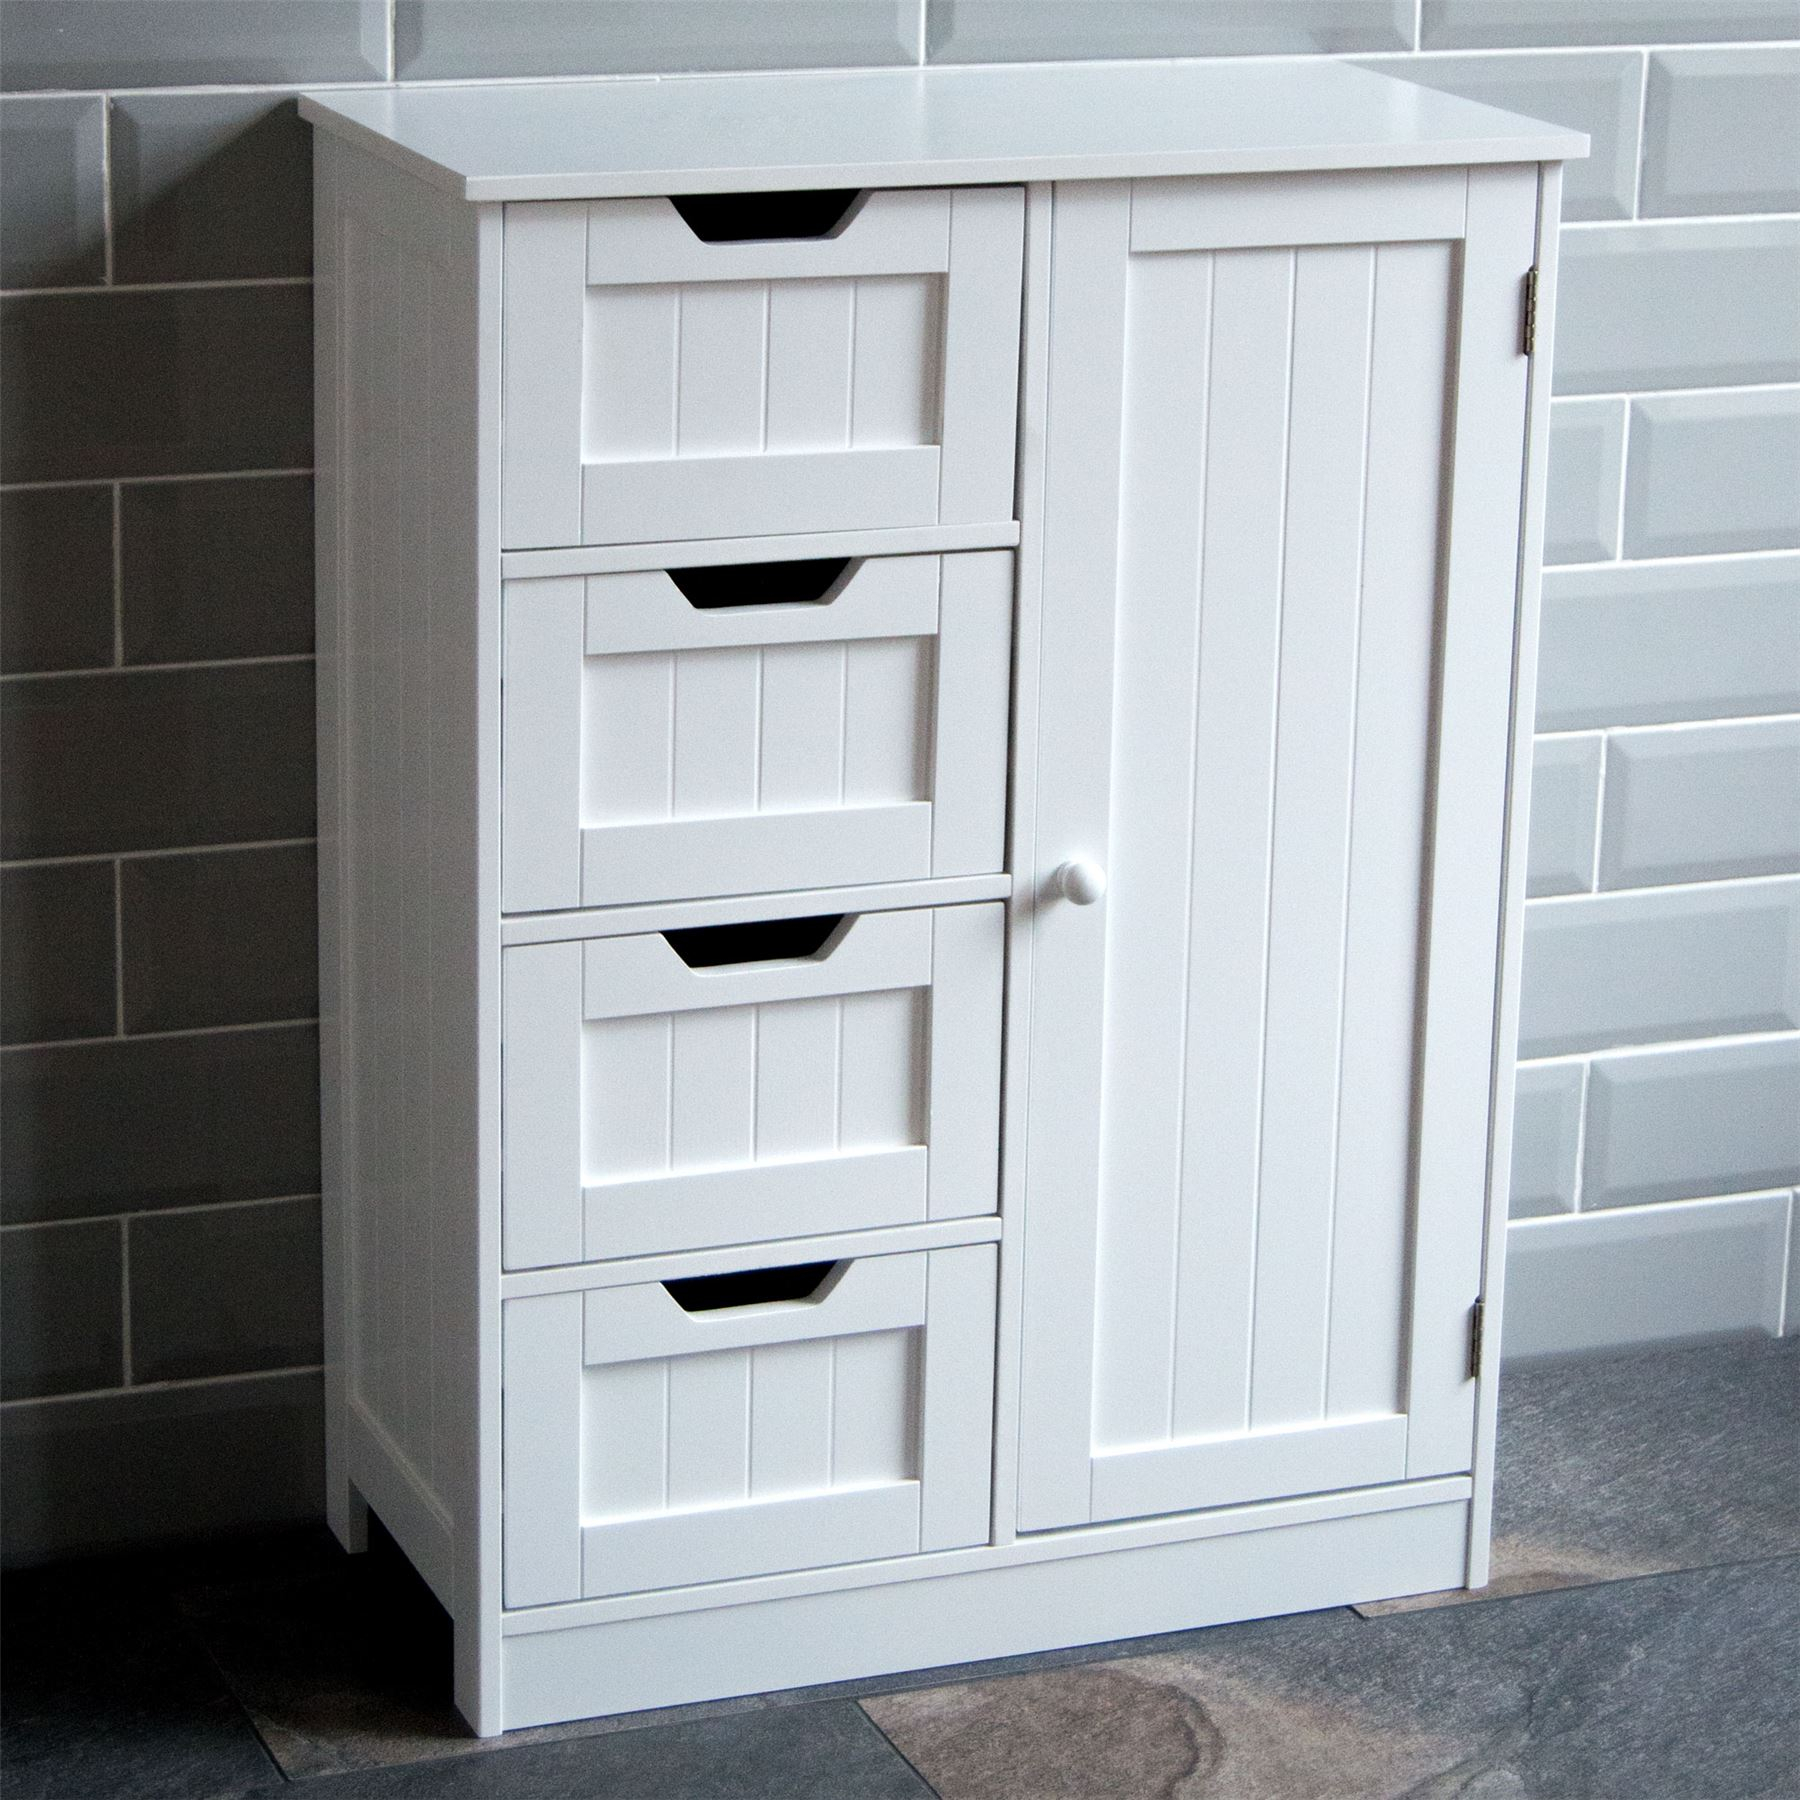 Details About Bathroom 4 Drawer Cabinet Door Storage Cupboard Wooden White Home Discount in sizing 1800 X 1800